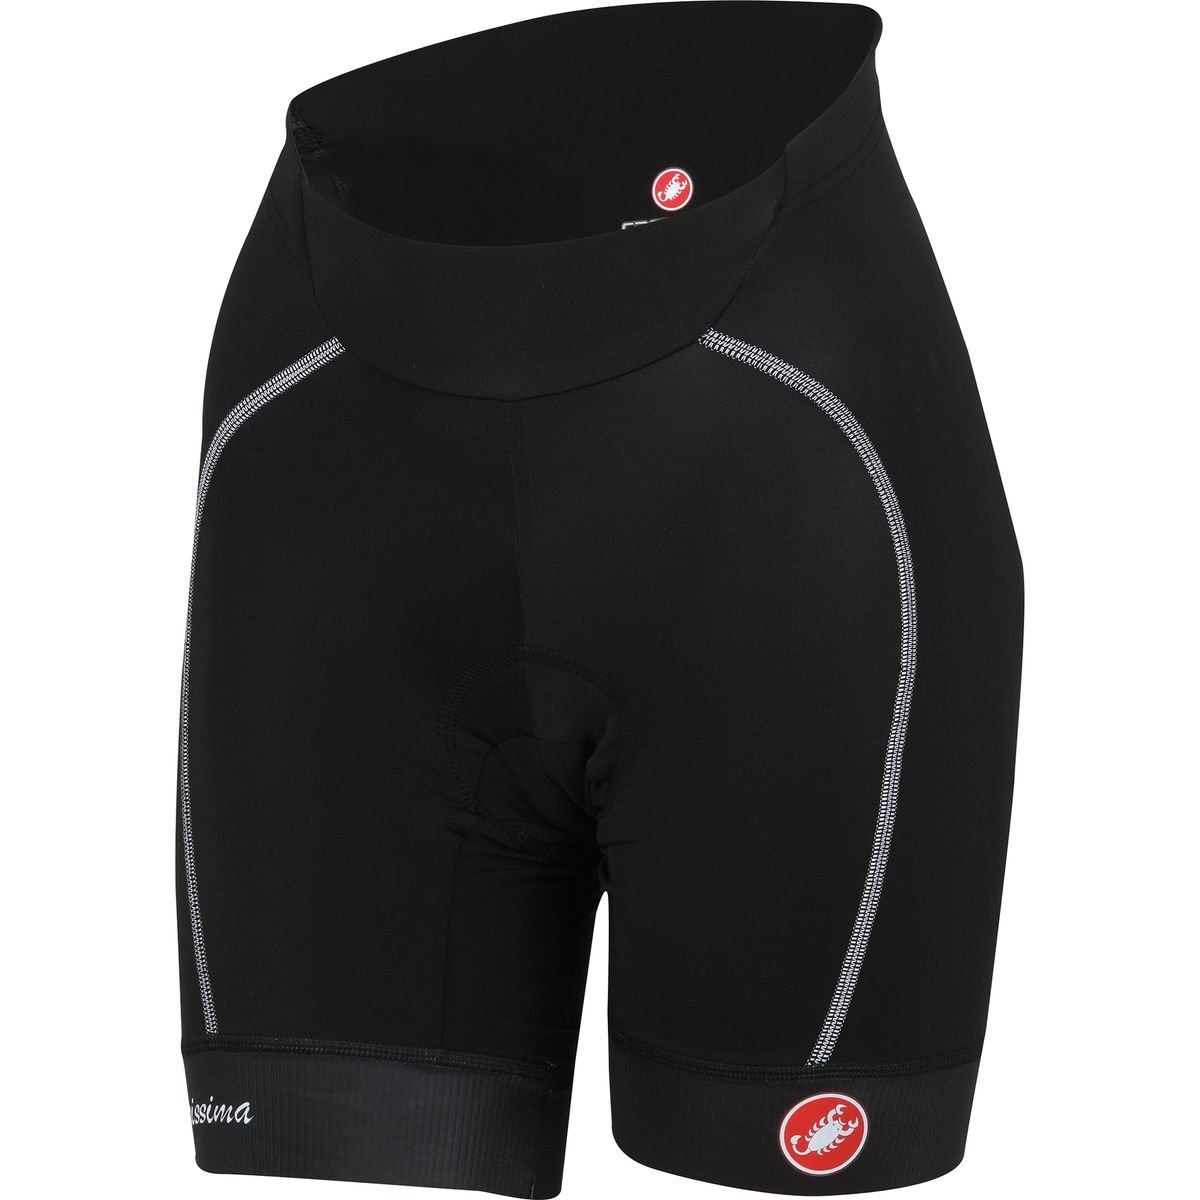 Castelli Velocissima Short - Women's Black/White, XS by Castelli (Image #1)